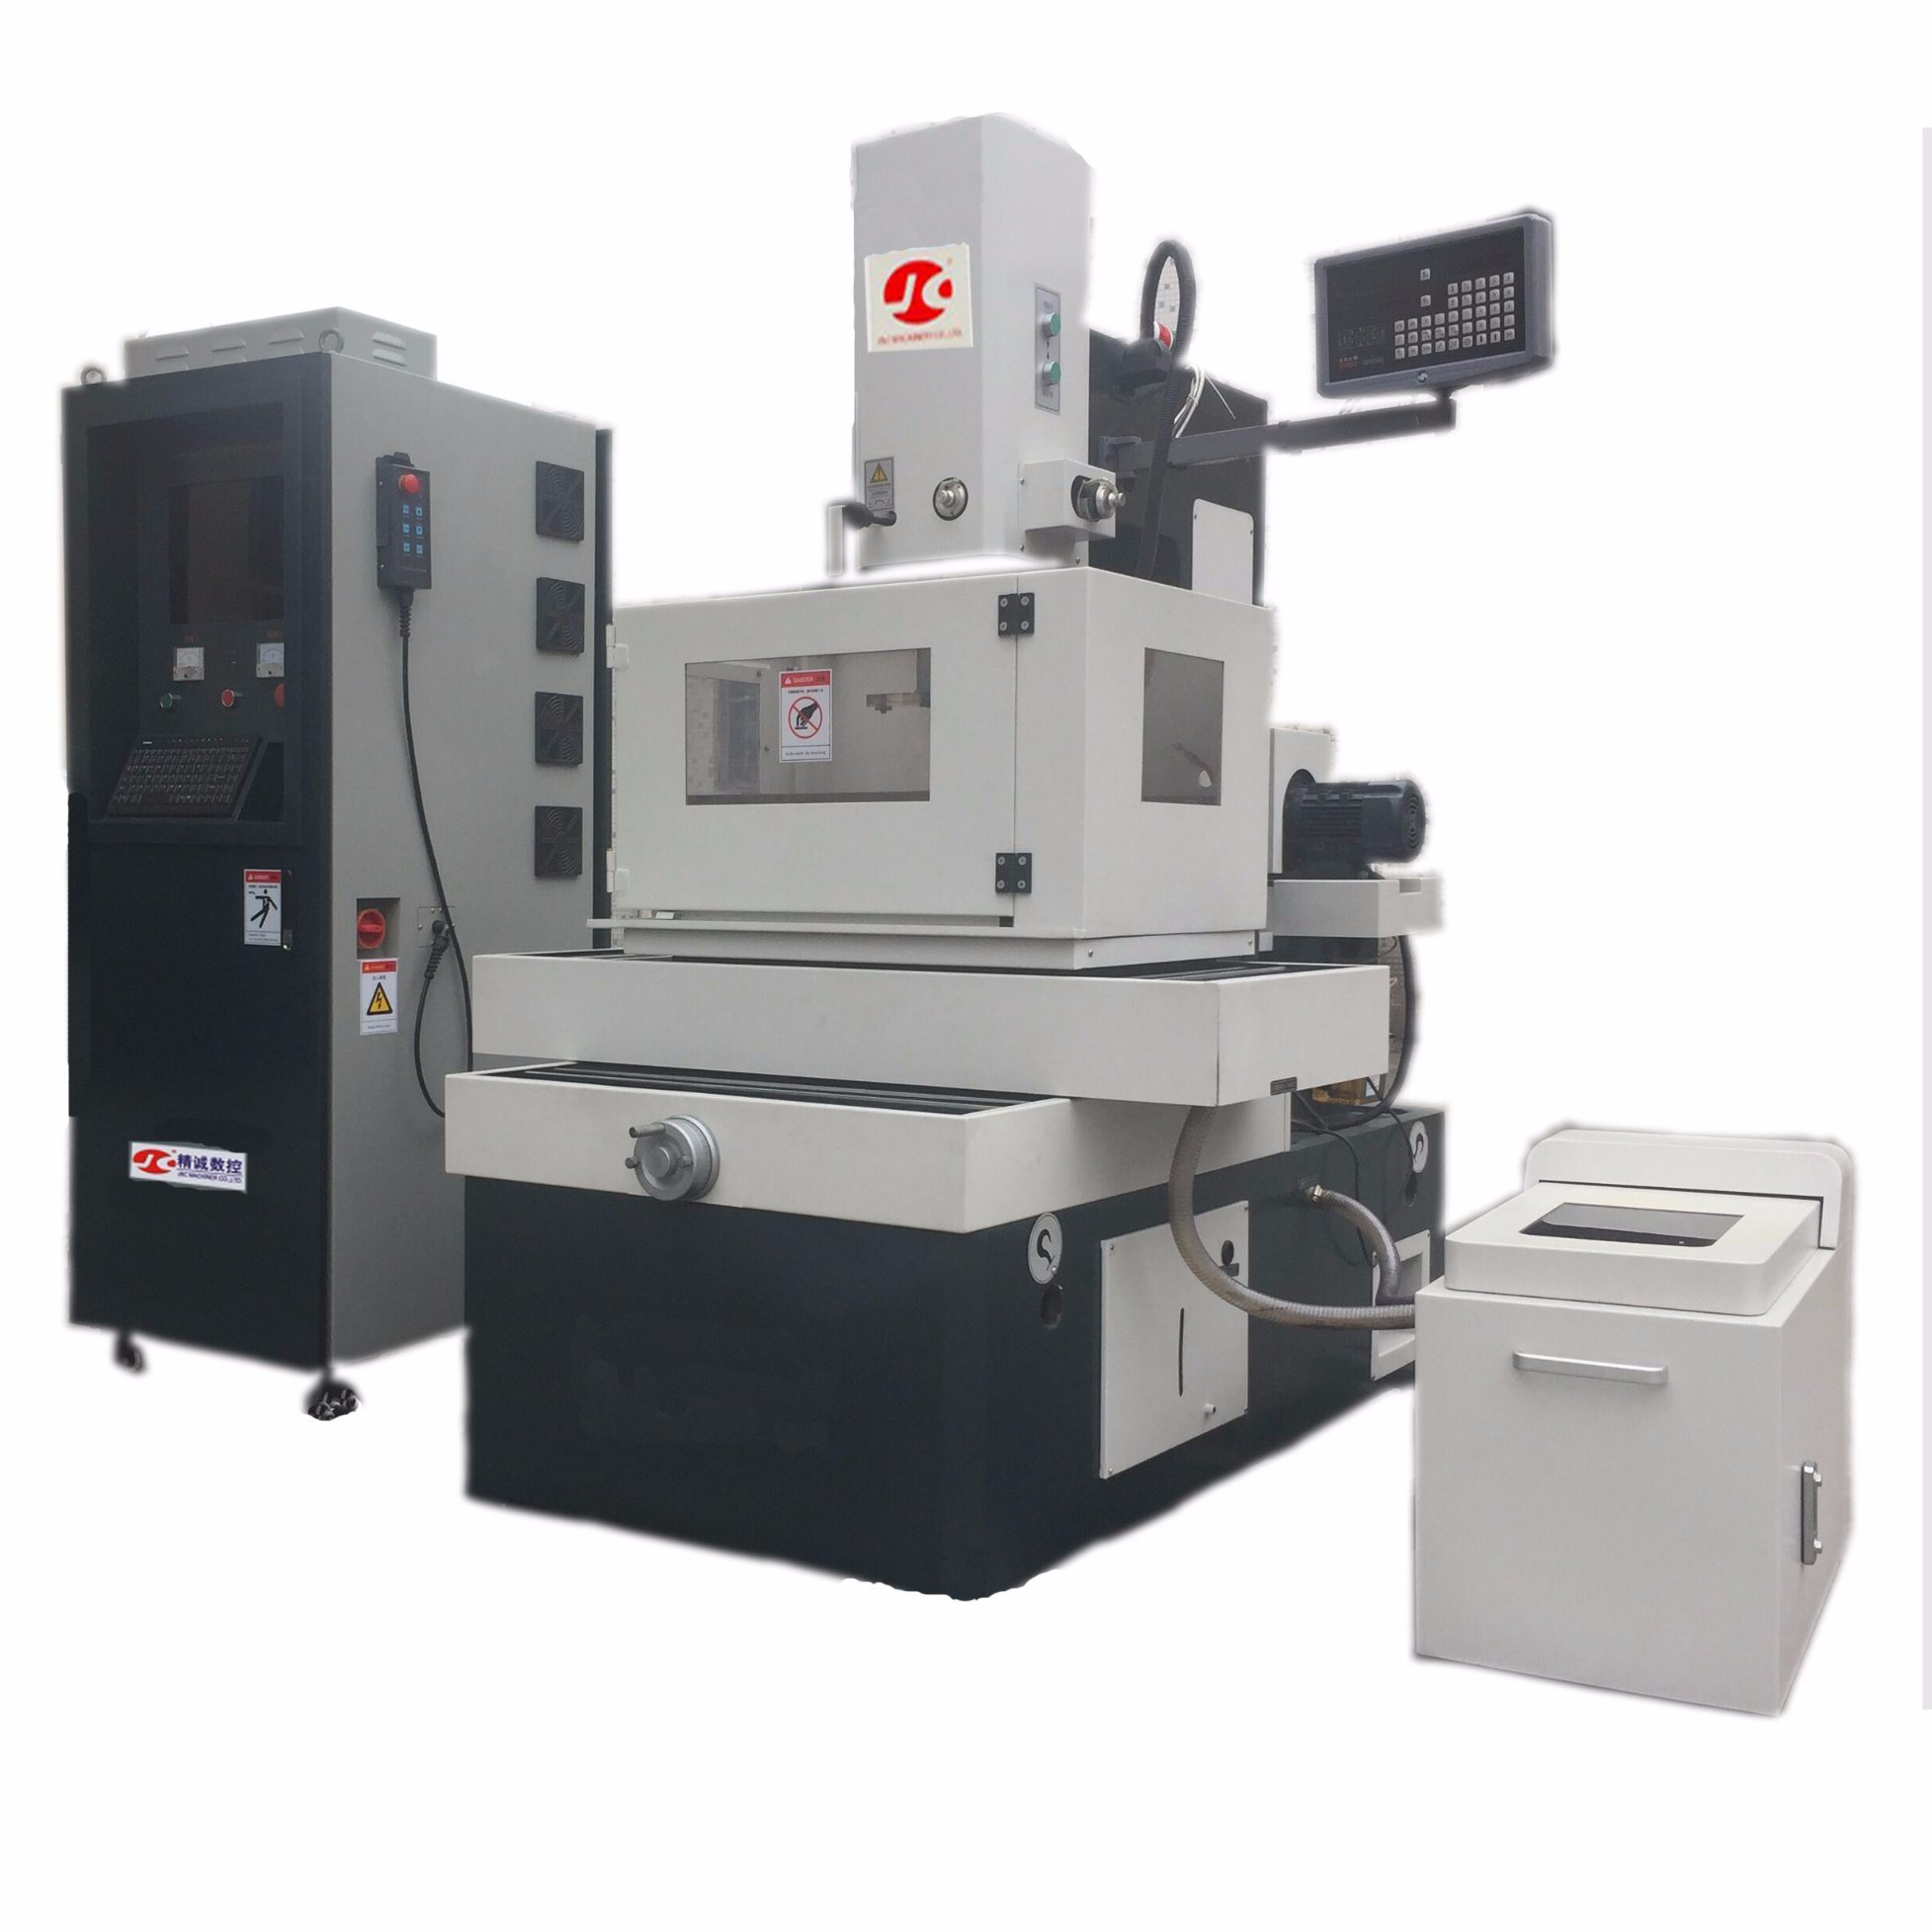 Jc-4050z Version 2 Multi Cut Medium Speed Wire Cutting EDM Machine